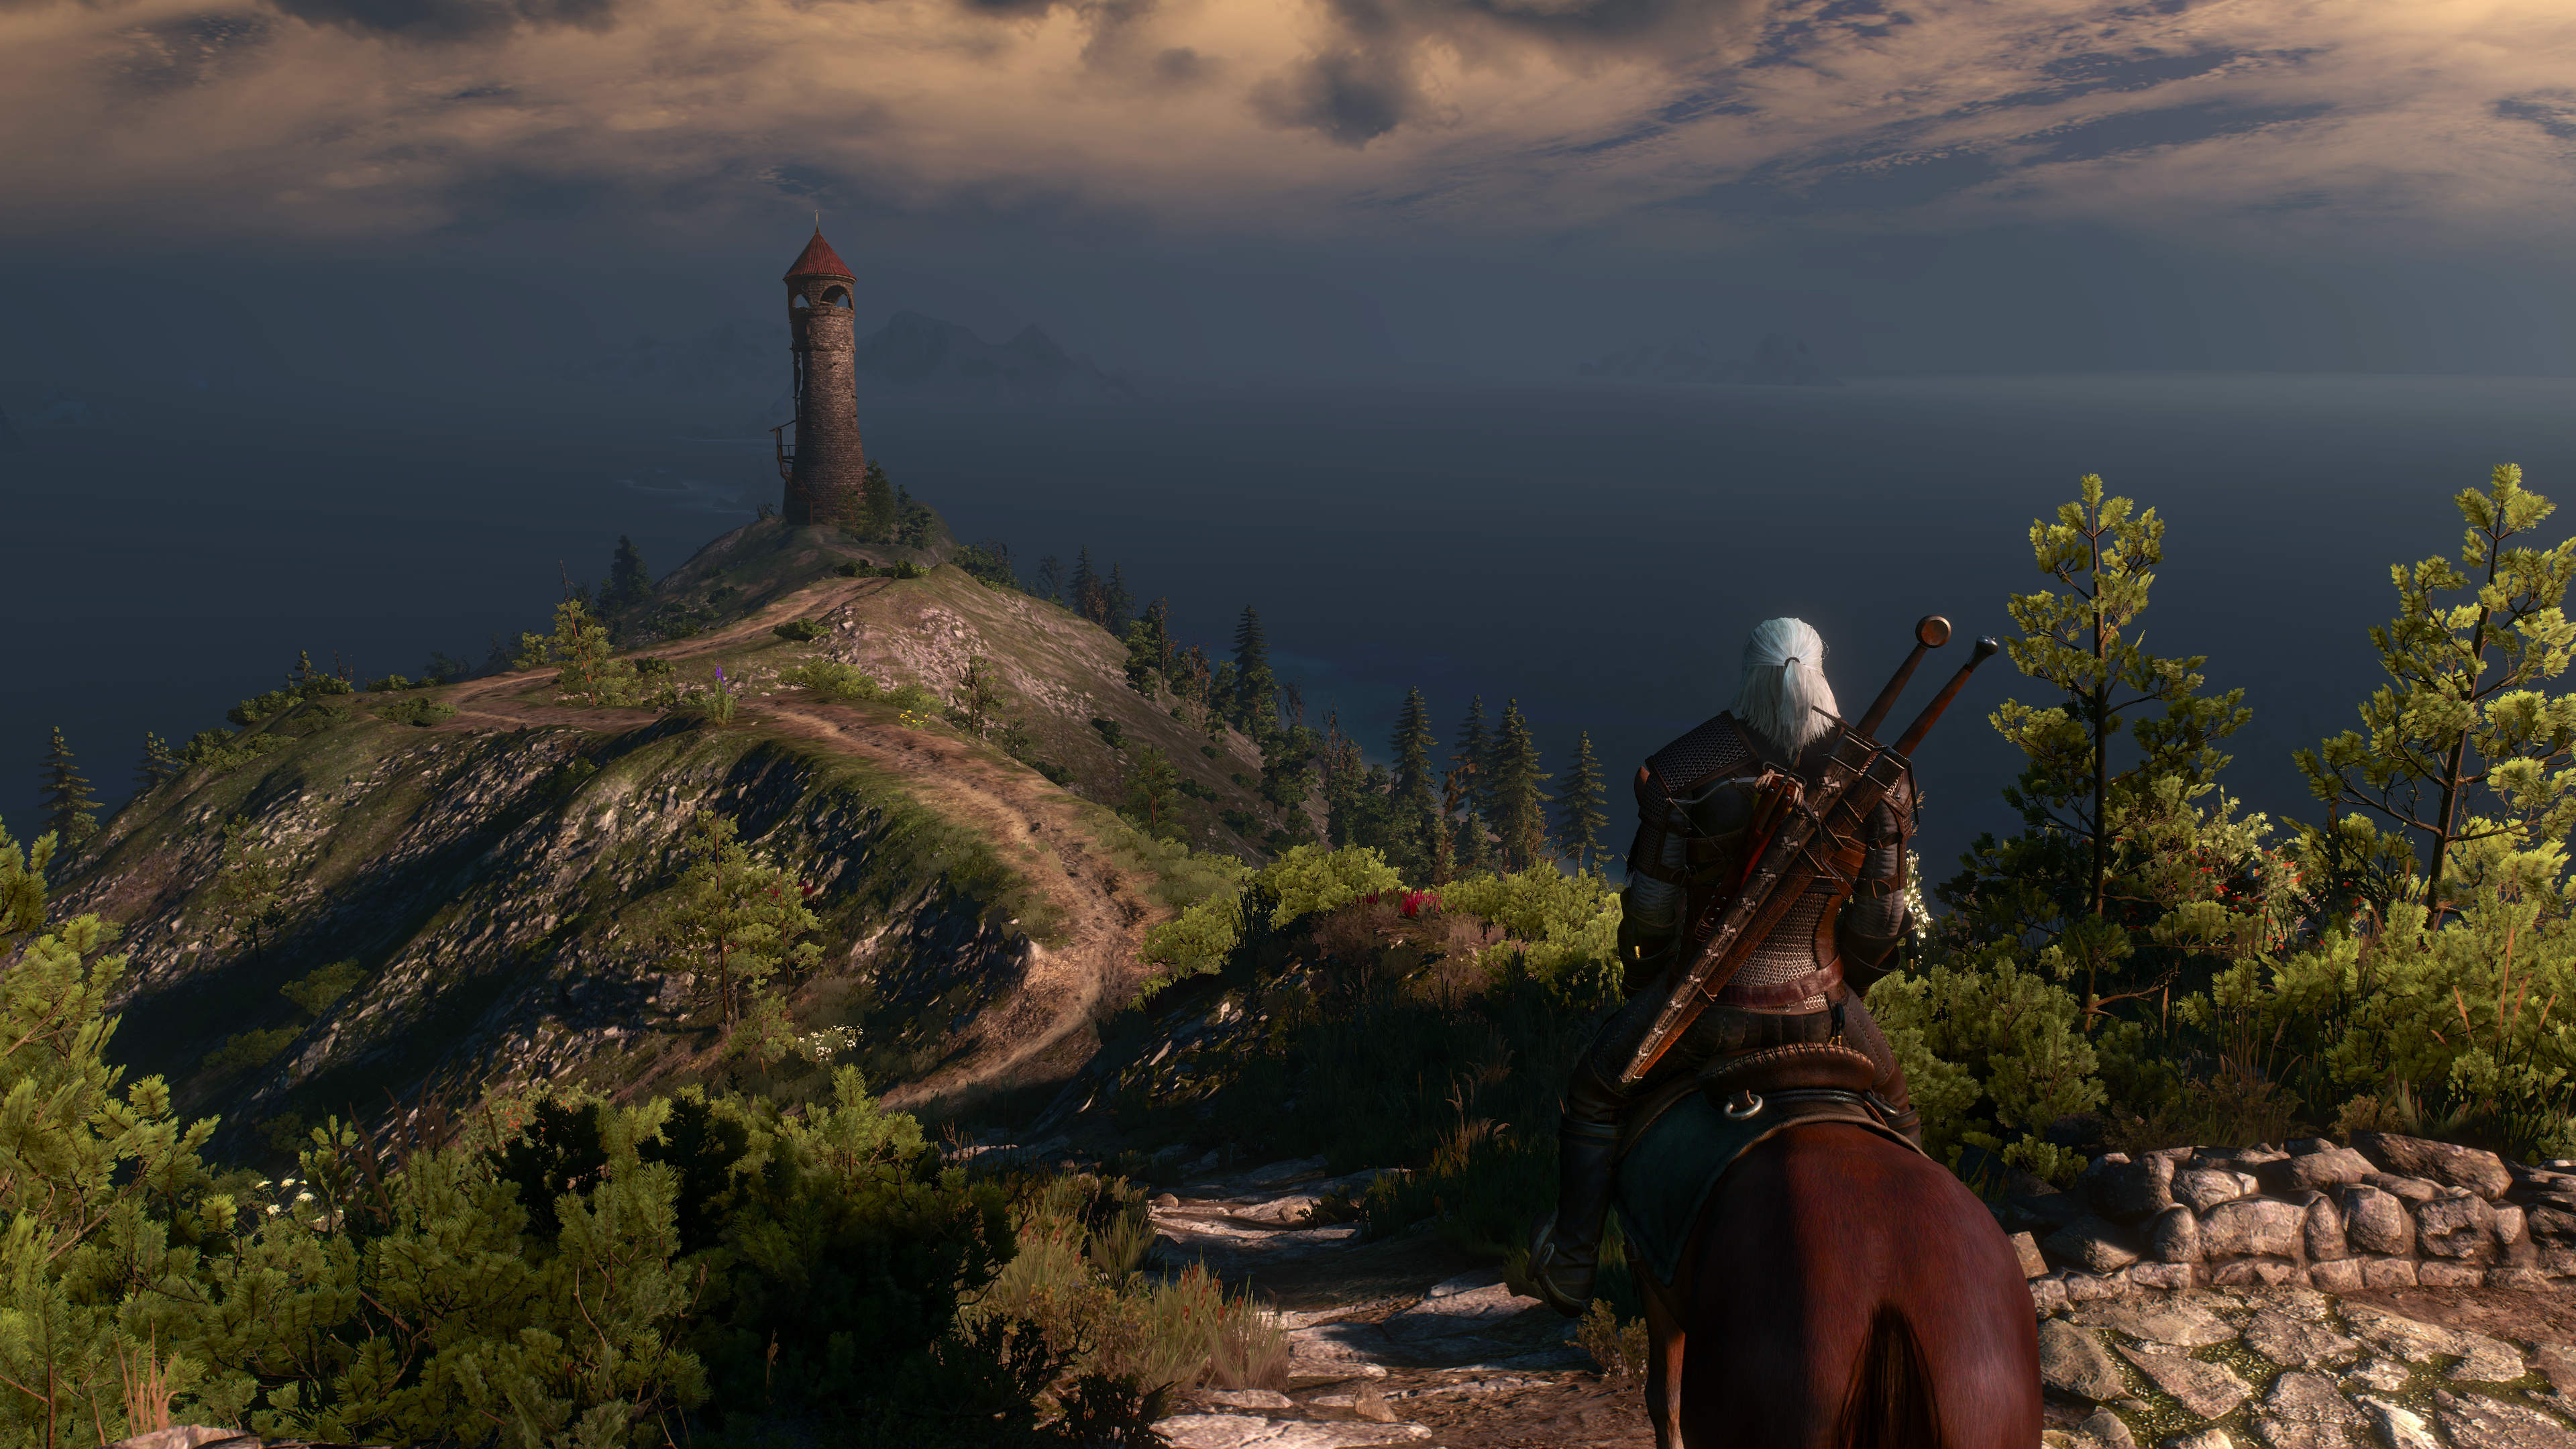 The Witcher 3 Wallpaper 4k